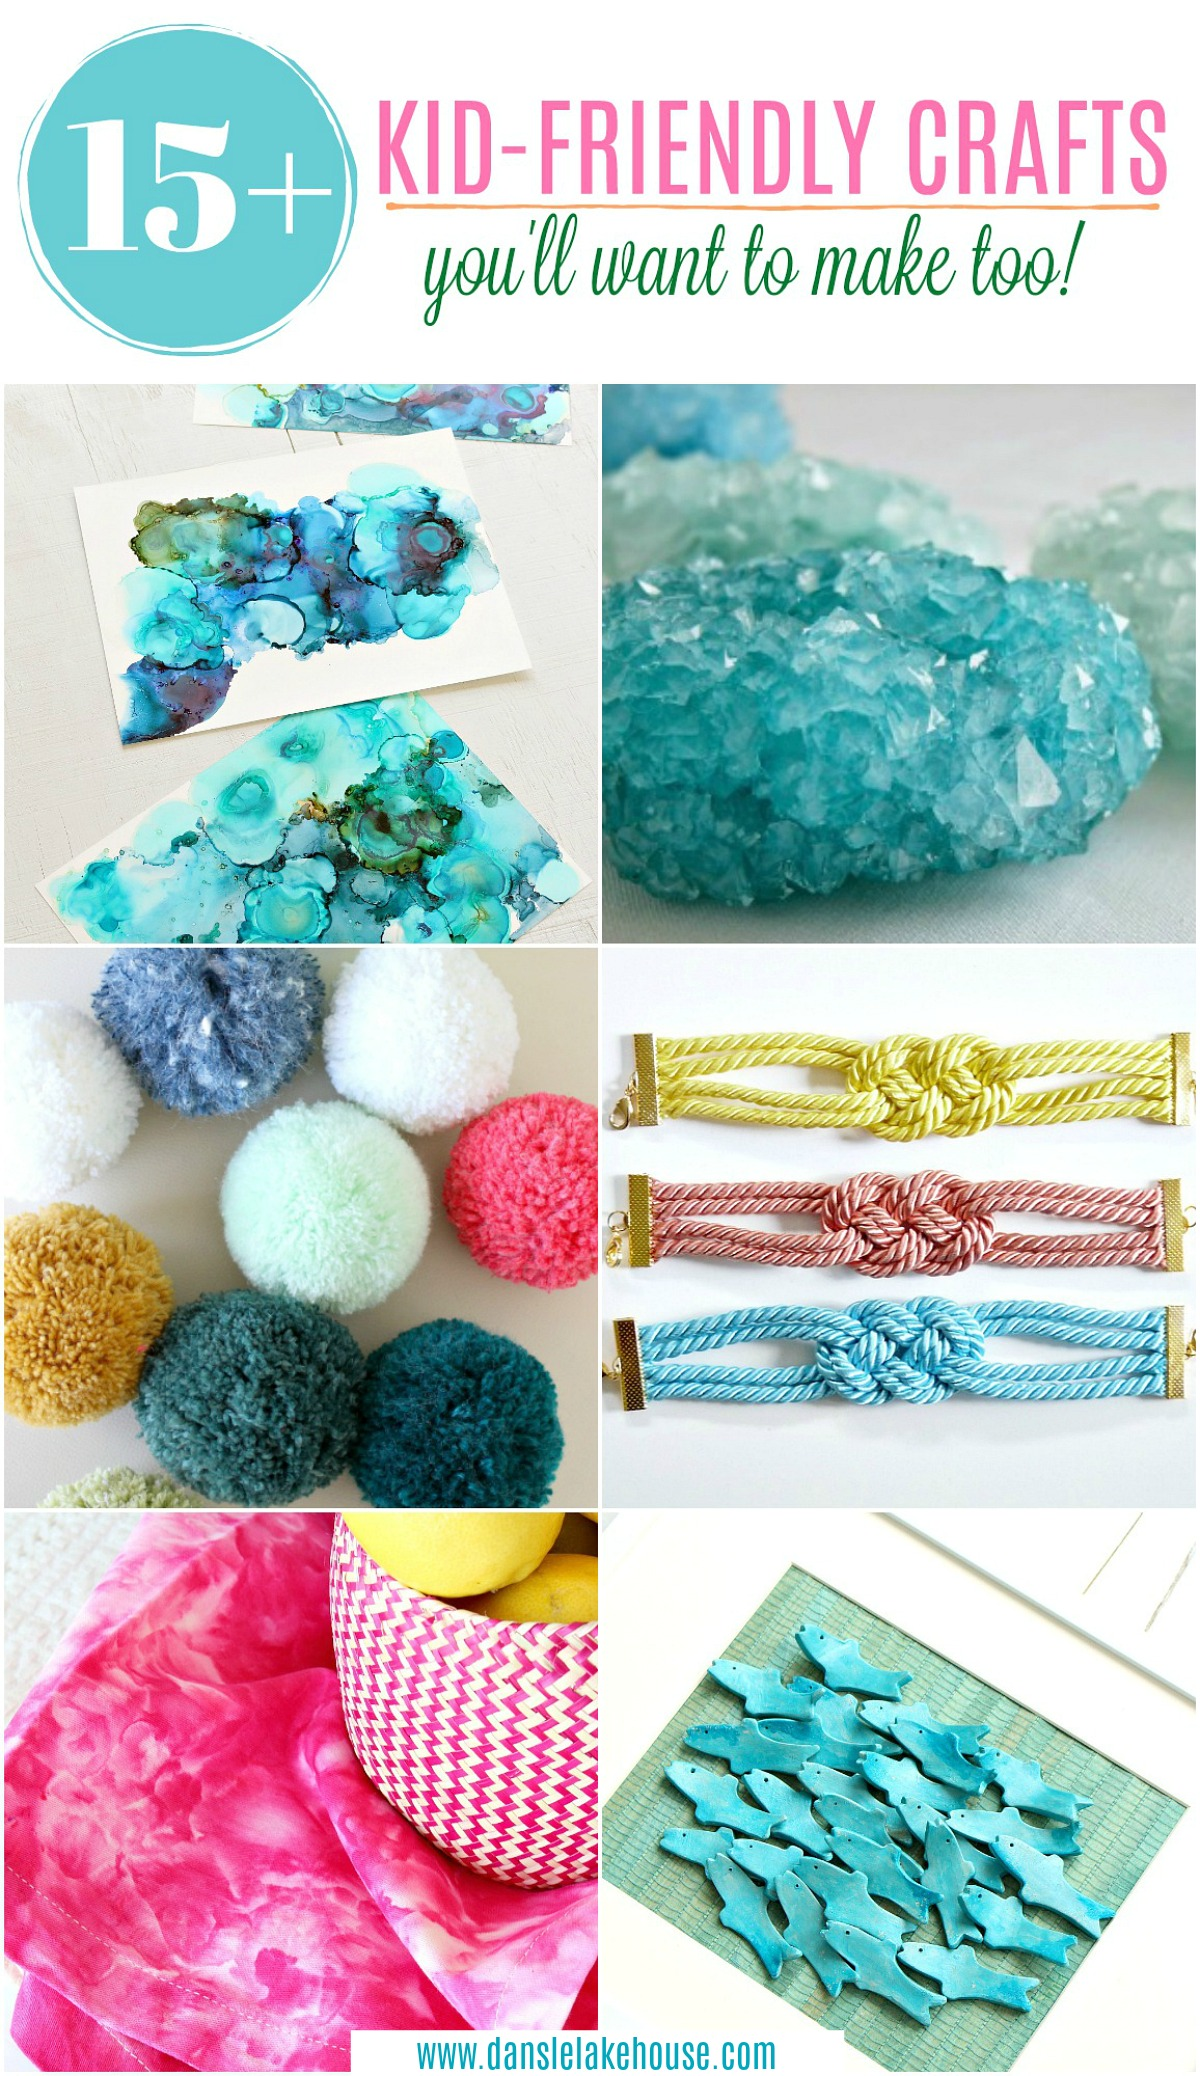 15+ kid-friendly crafts you'll want to make too